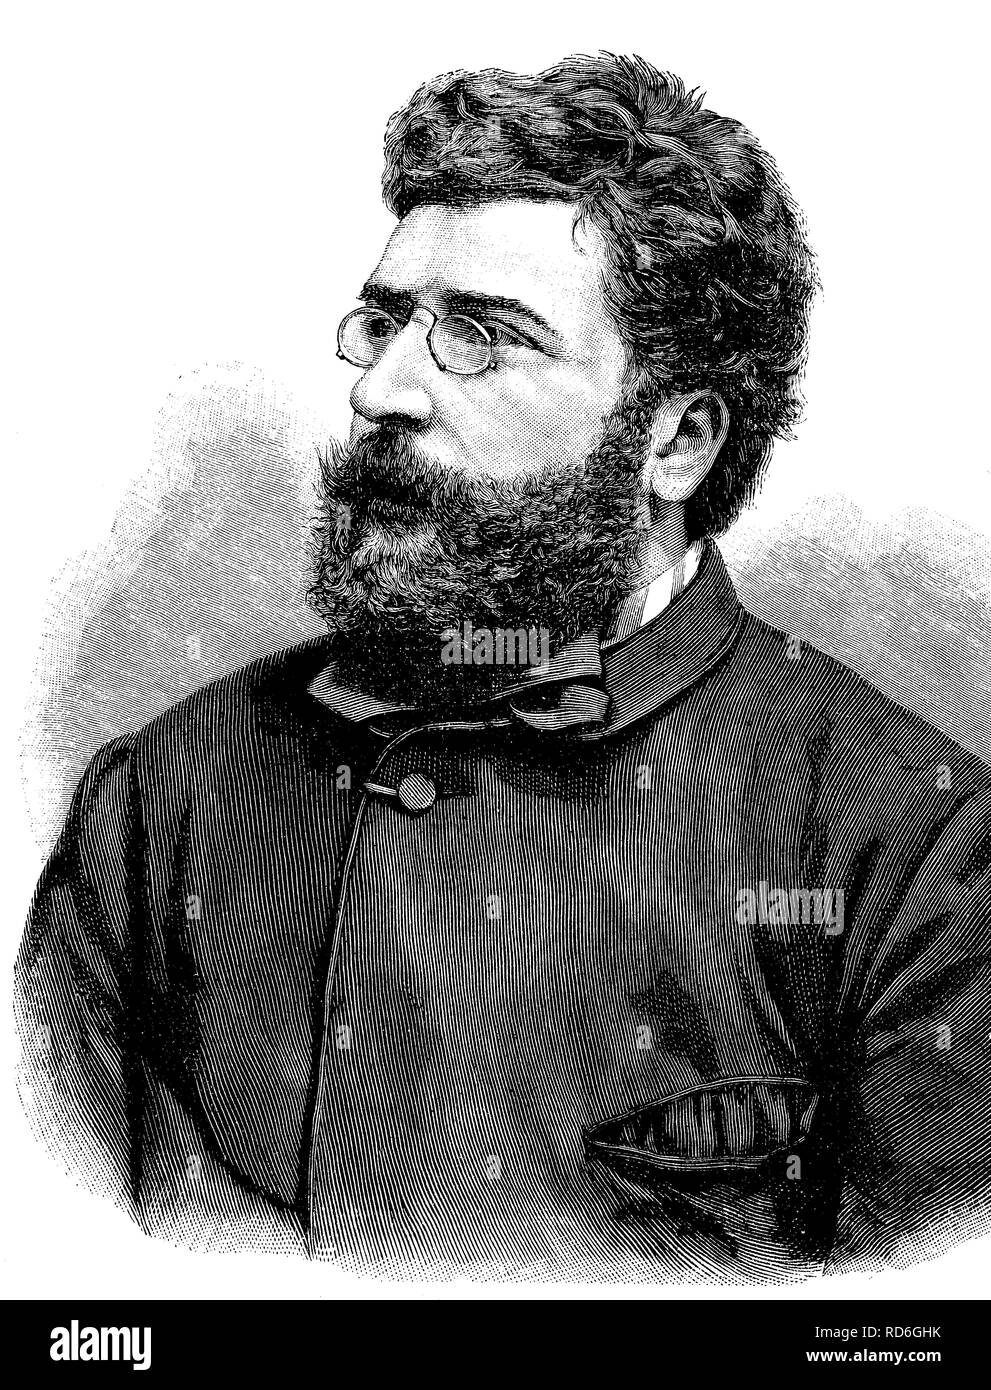 Georges Bizet, 1838 - 1875, French composer, historical illustration circa 1893 - Stock Image